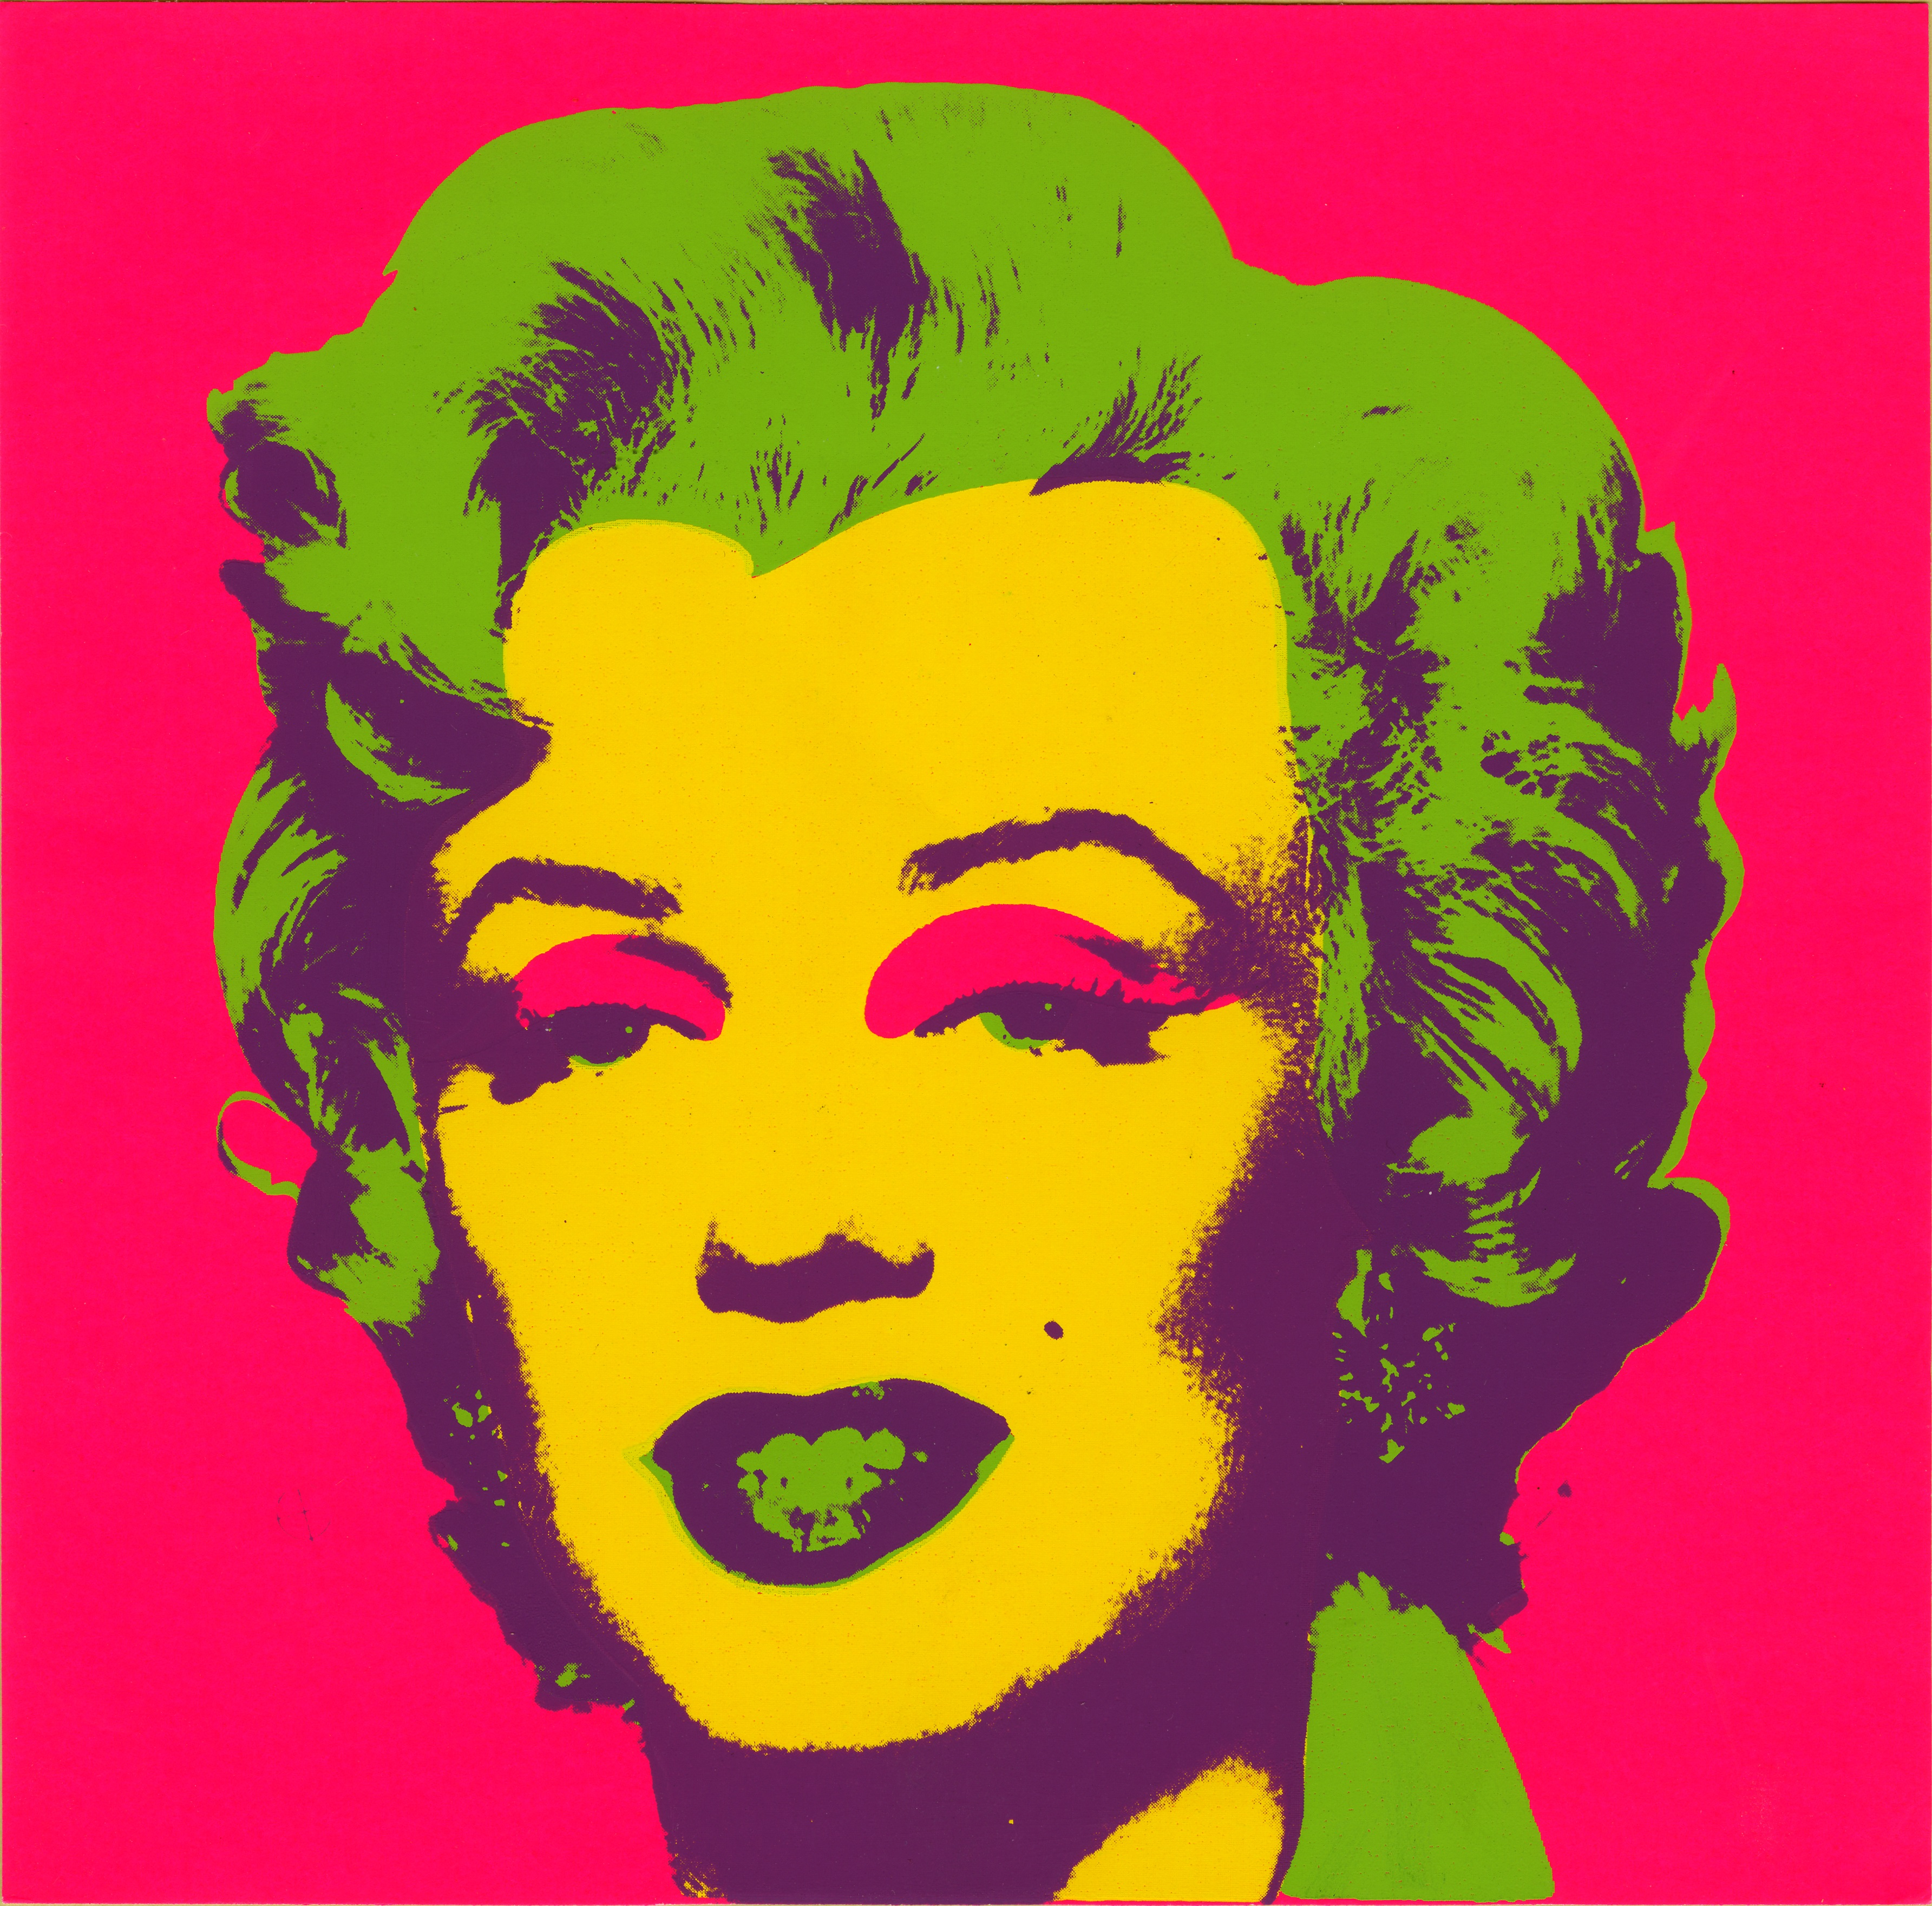 i-marilyn-print-i-1967-seriagrafia-sobre-papel-collection-of-the-andy-warhol-museum-pittsburgh-c-2017-the-andy-warhol